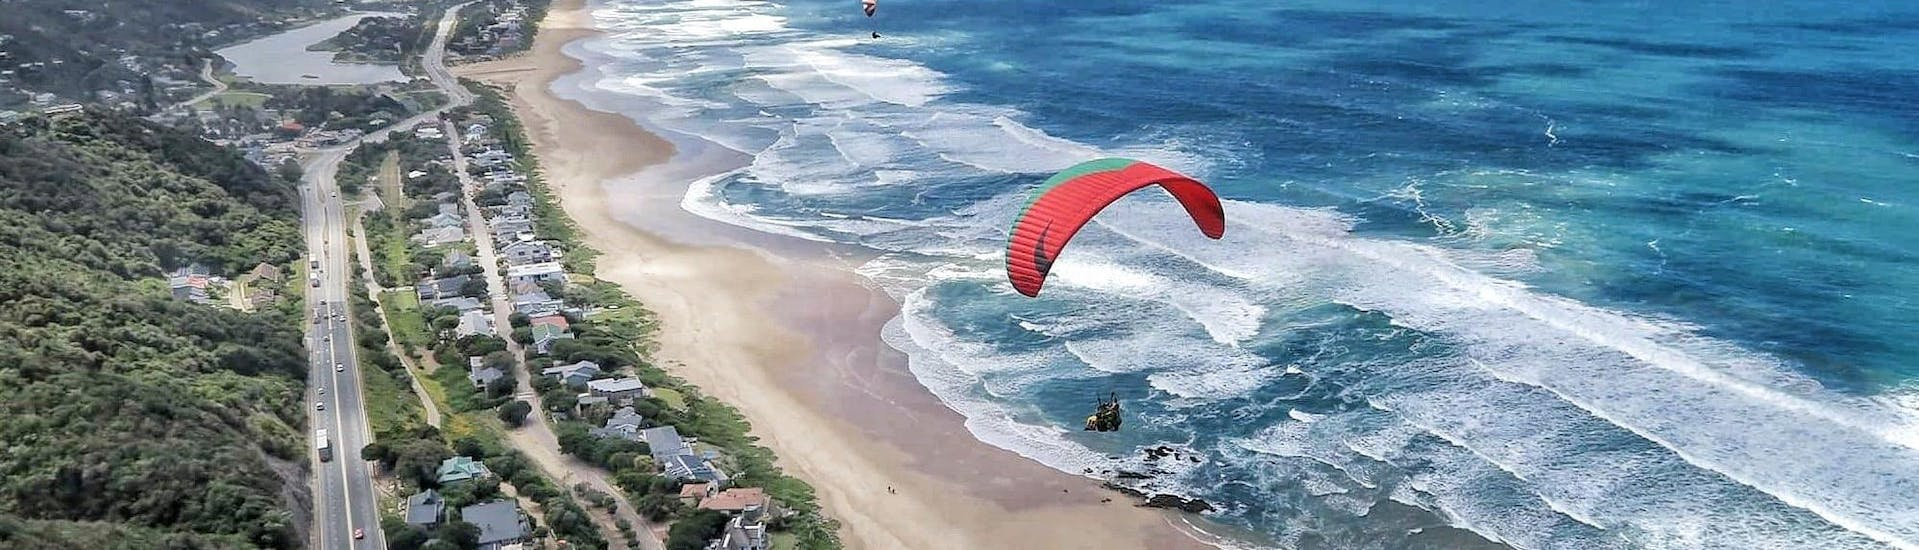 Experienced tandem pilot from Dolphin Paragliding Wilderness is flying with a client above the roaring ocean.